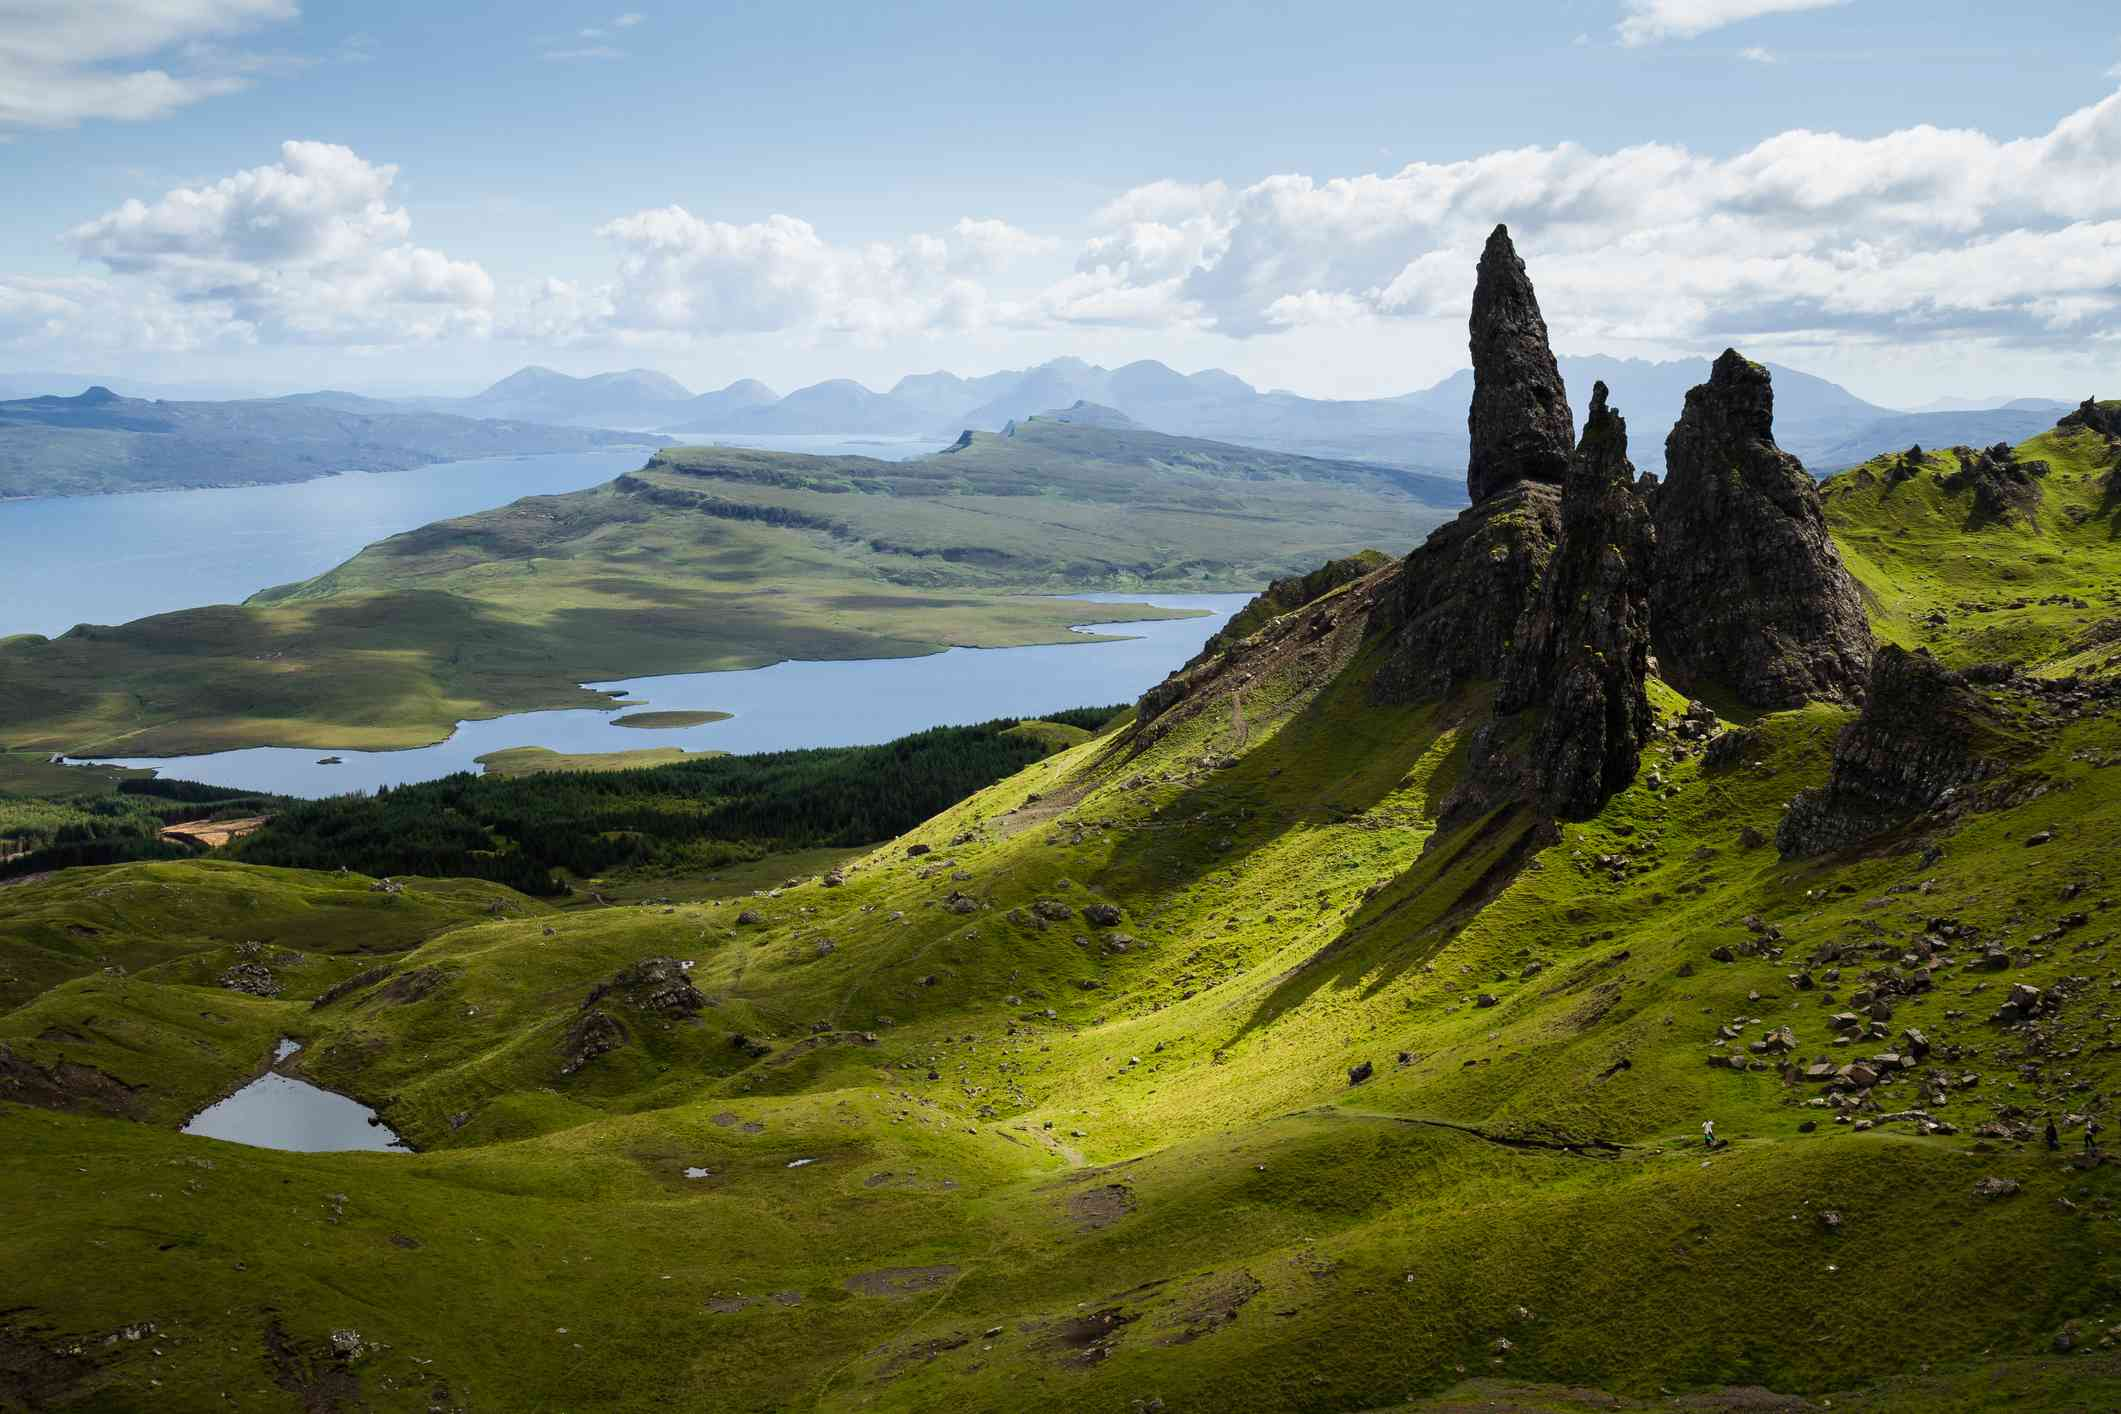 Rock formations and green hills on the isle of skye